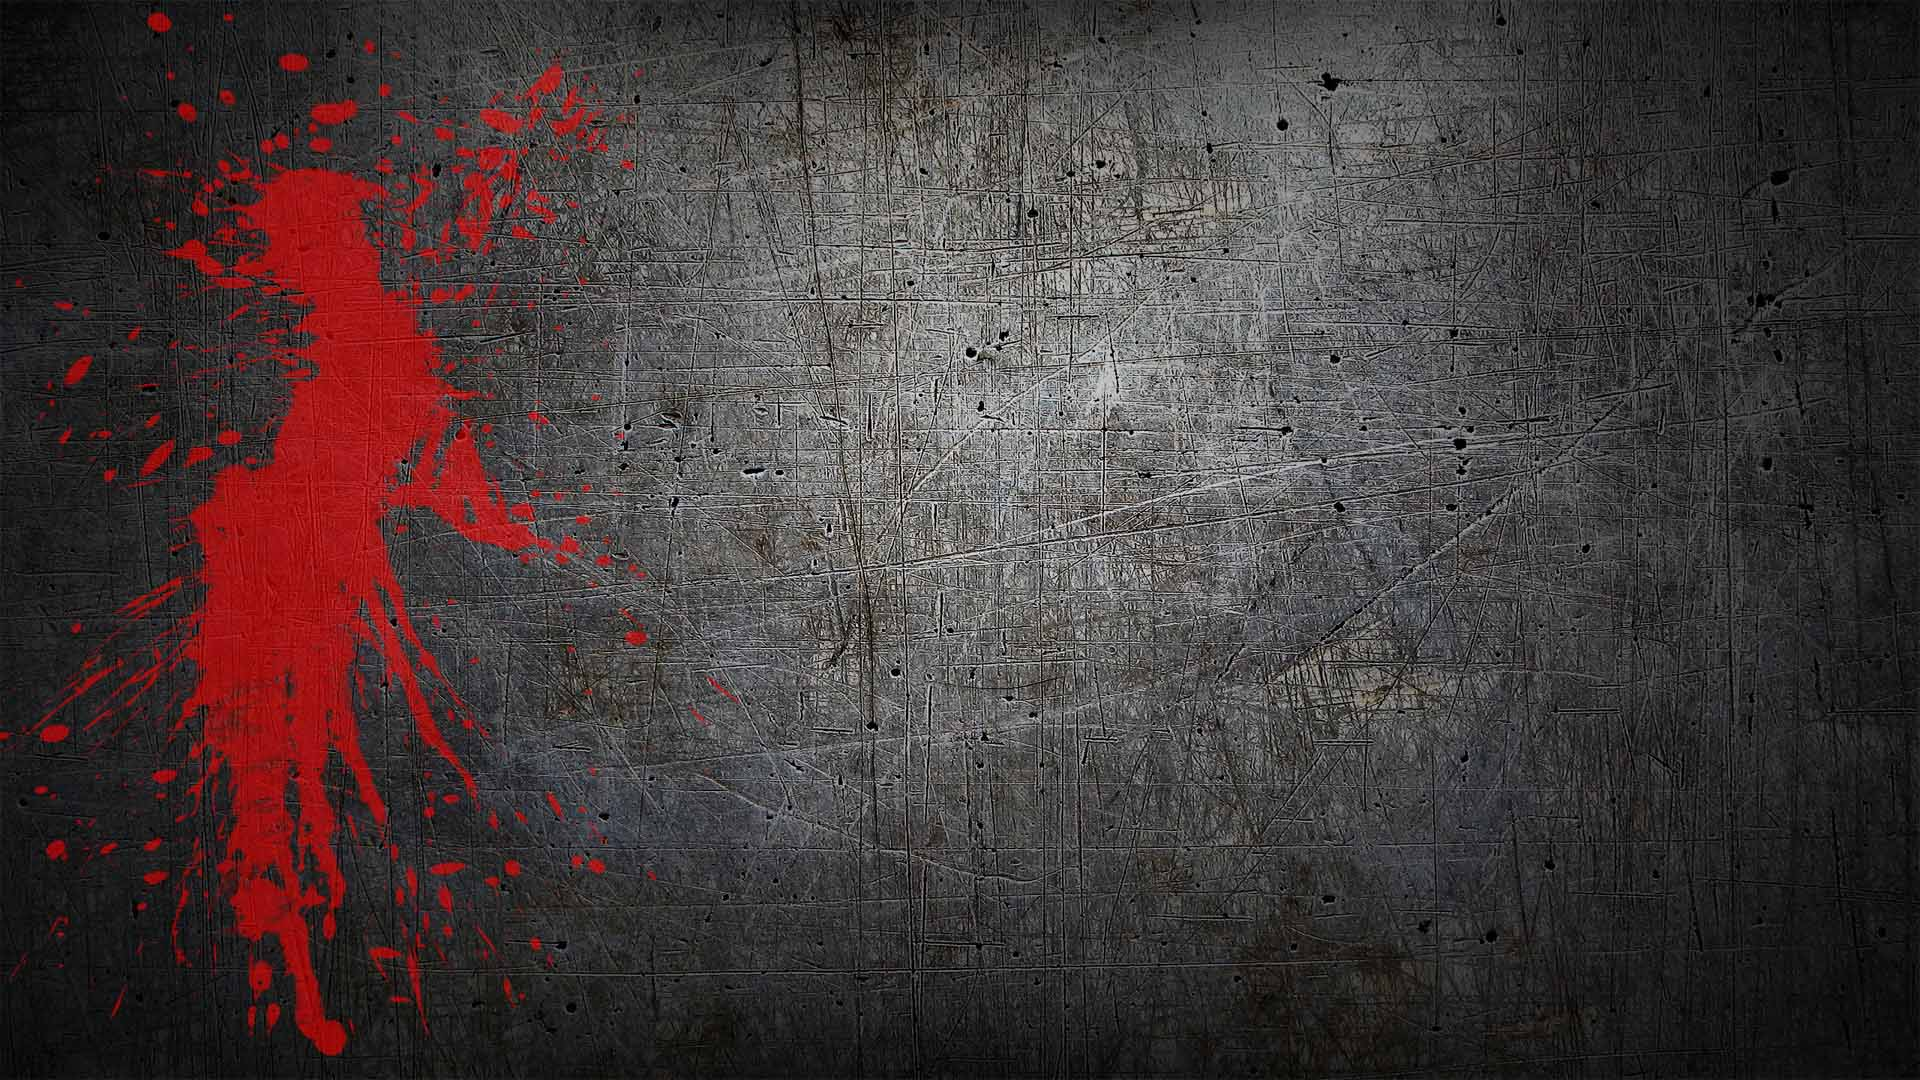 Steam Community Market Listings For 578250 The Blood On The Metal Choose from a curated selection of textured wallpapers for your mobile and desktop screens. listings for 578250 the blood on the metal